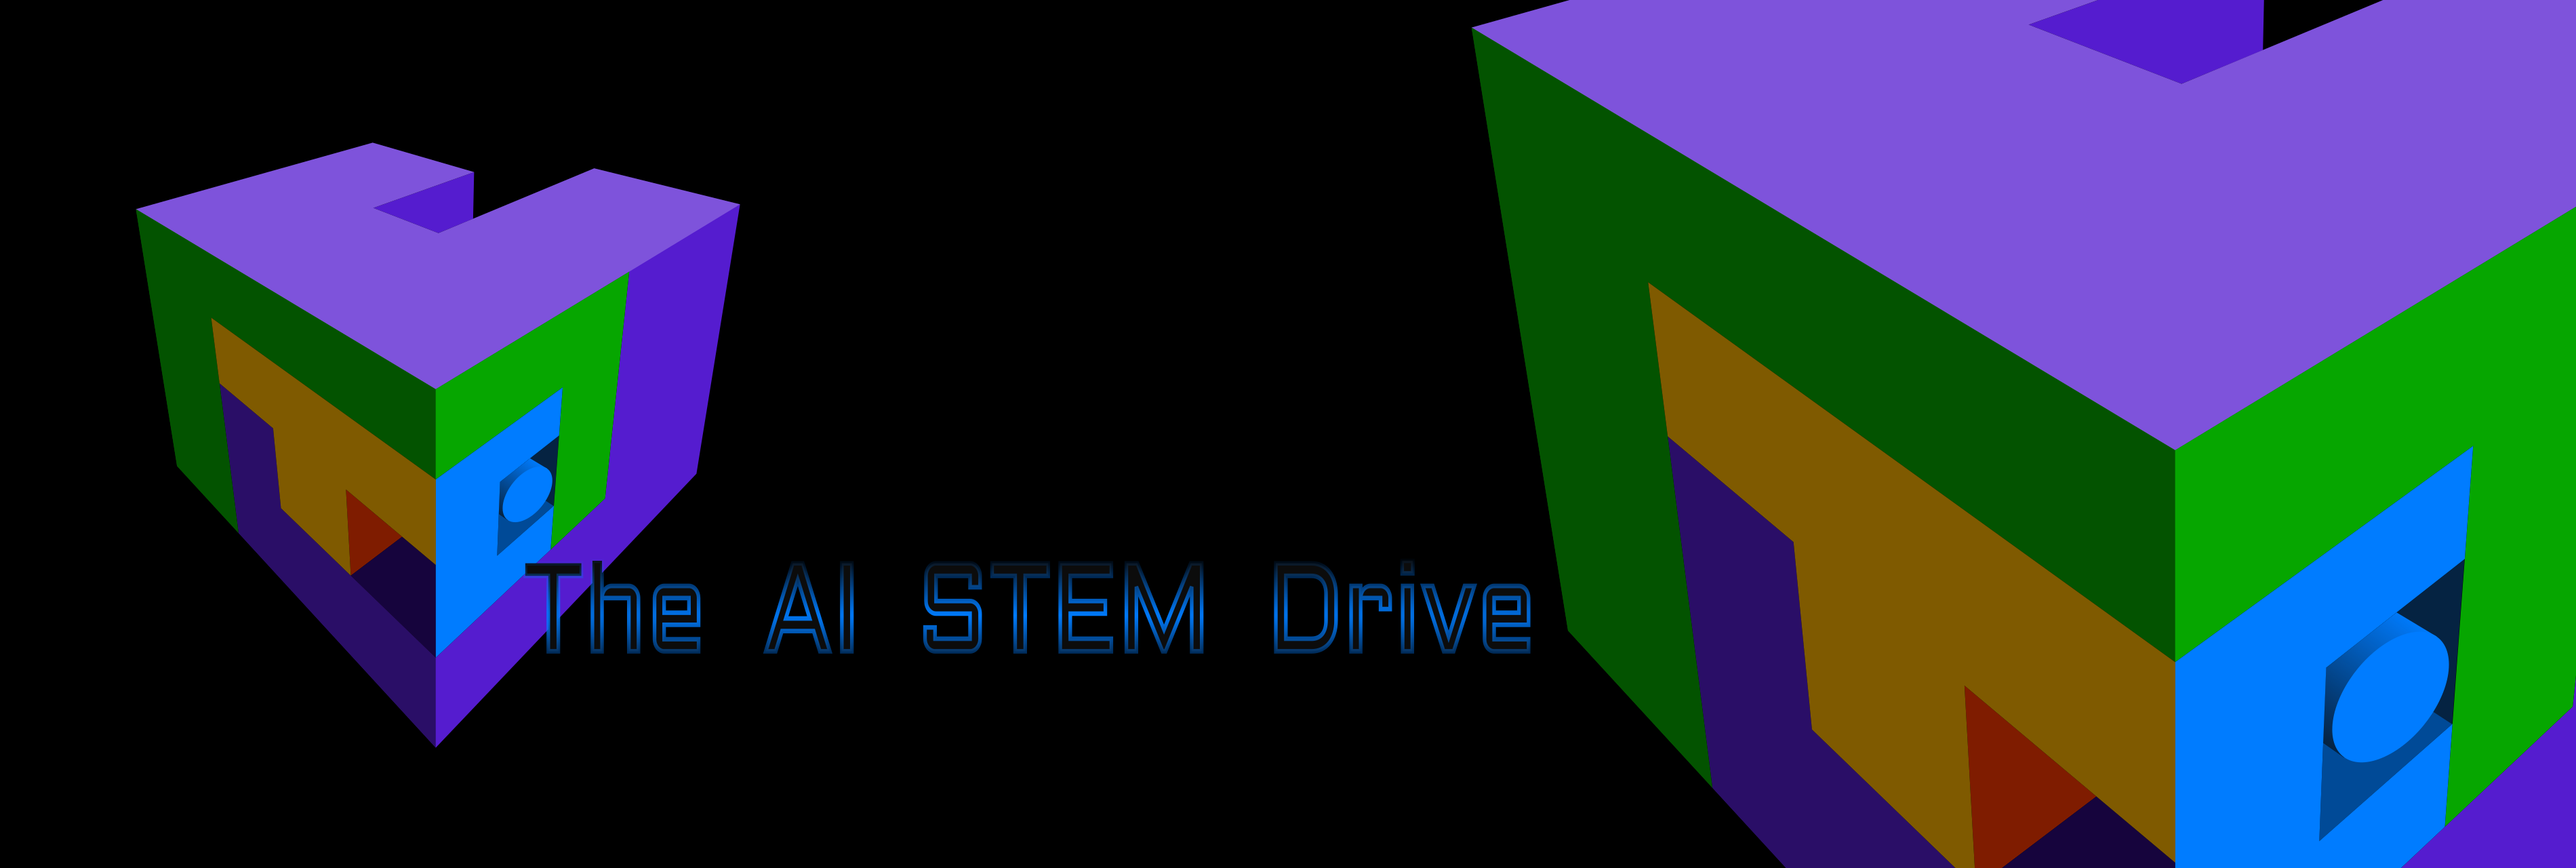 What is The AI STEM Drive?